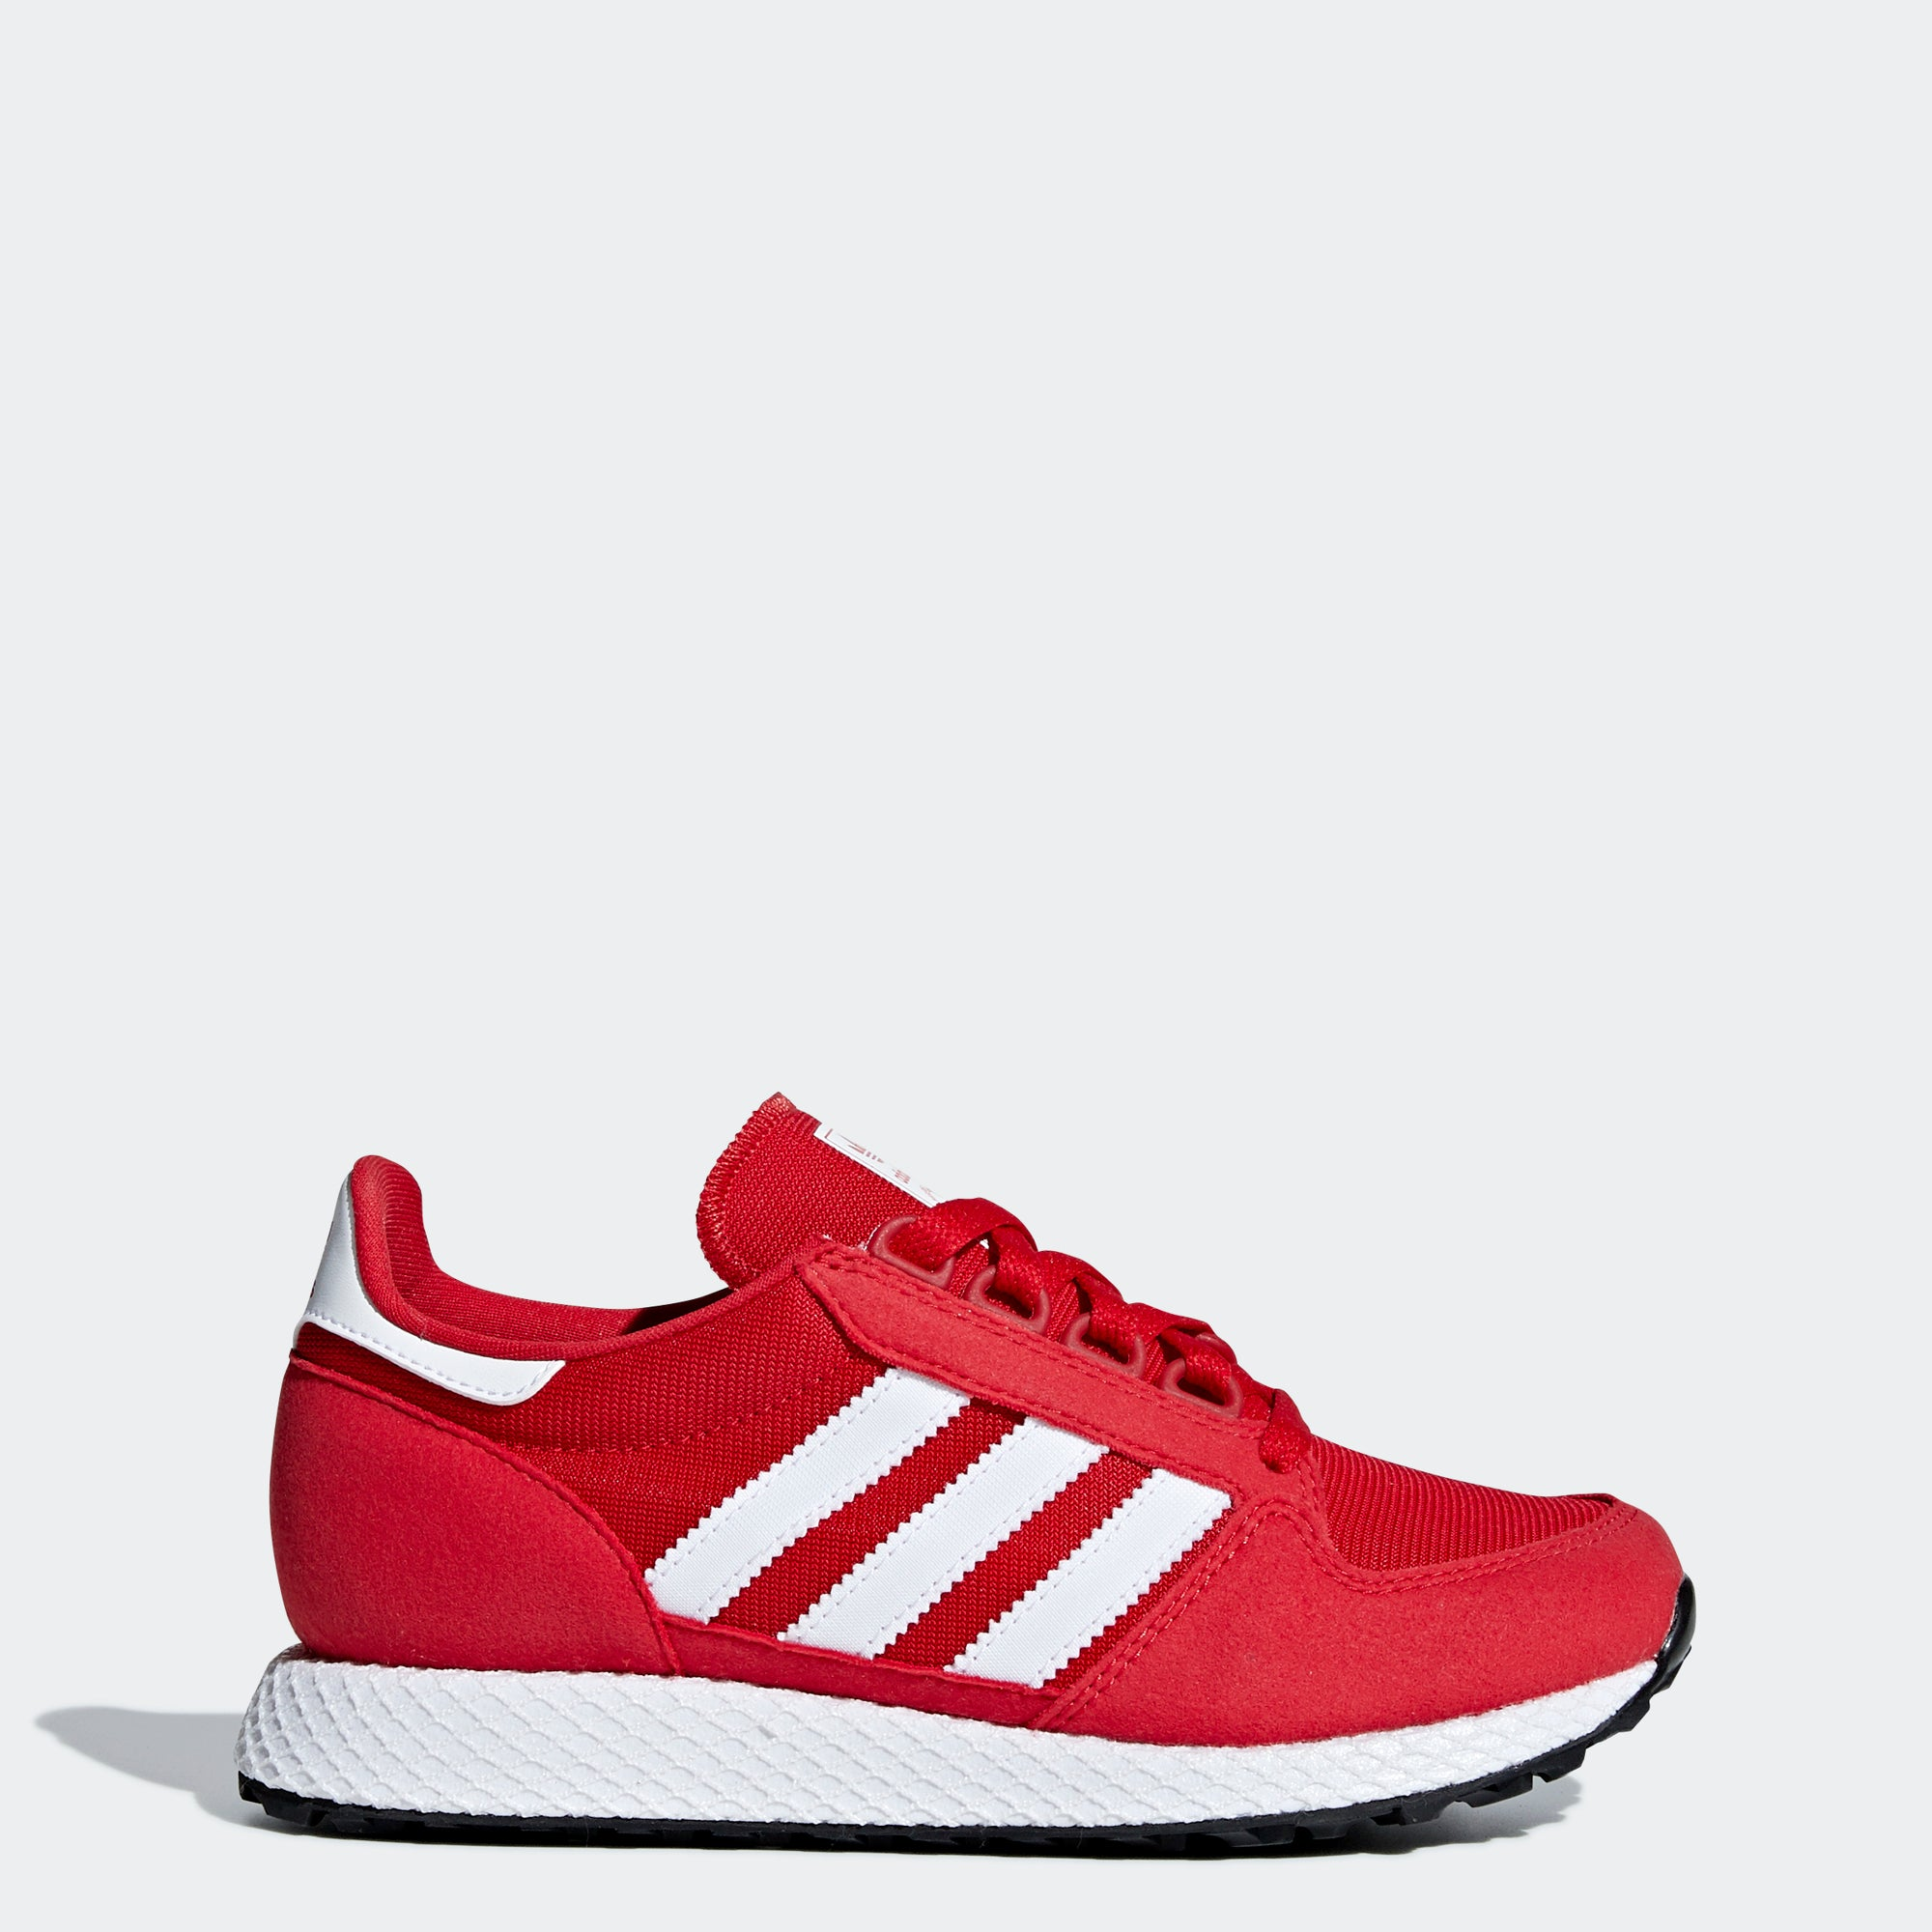 check out 7842a f17c9 Kid s adidas Originals Forest Grove Shoes Scarlet Red